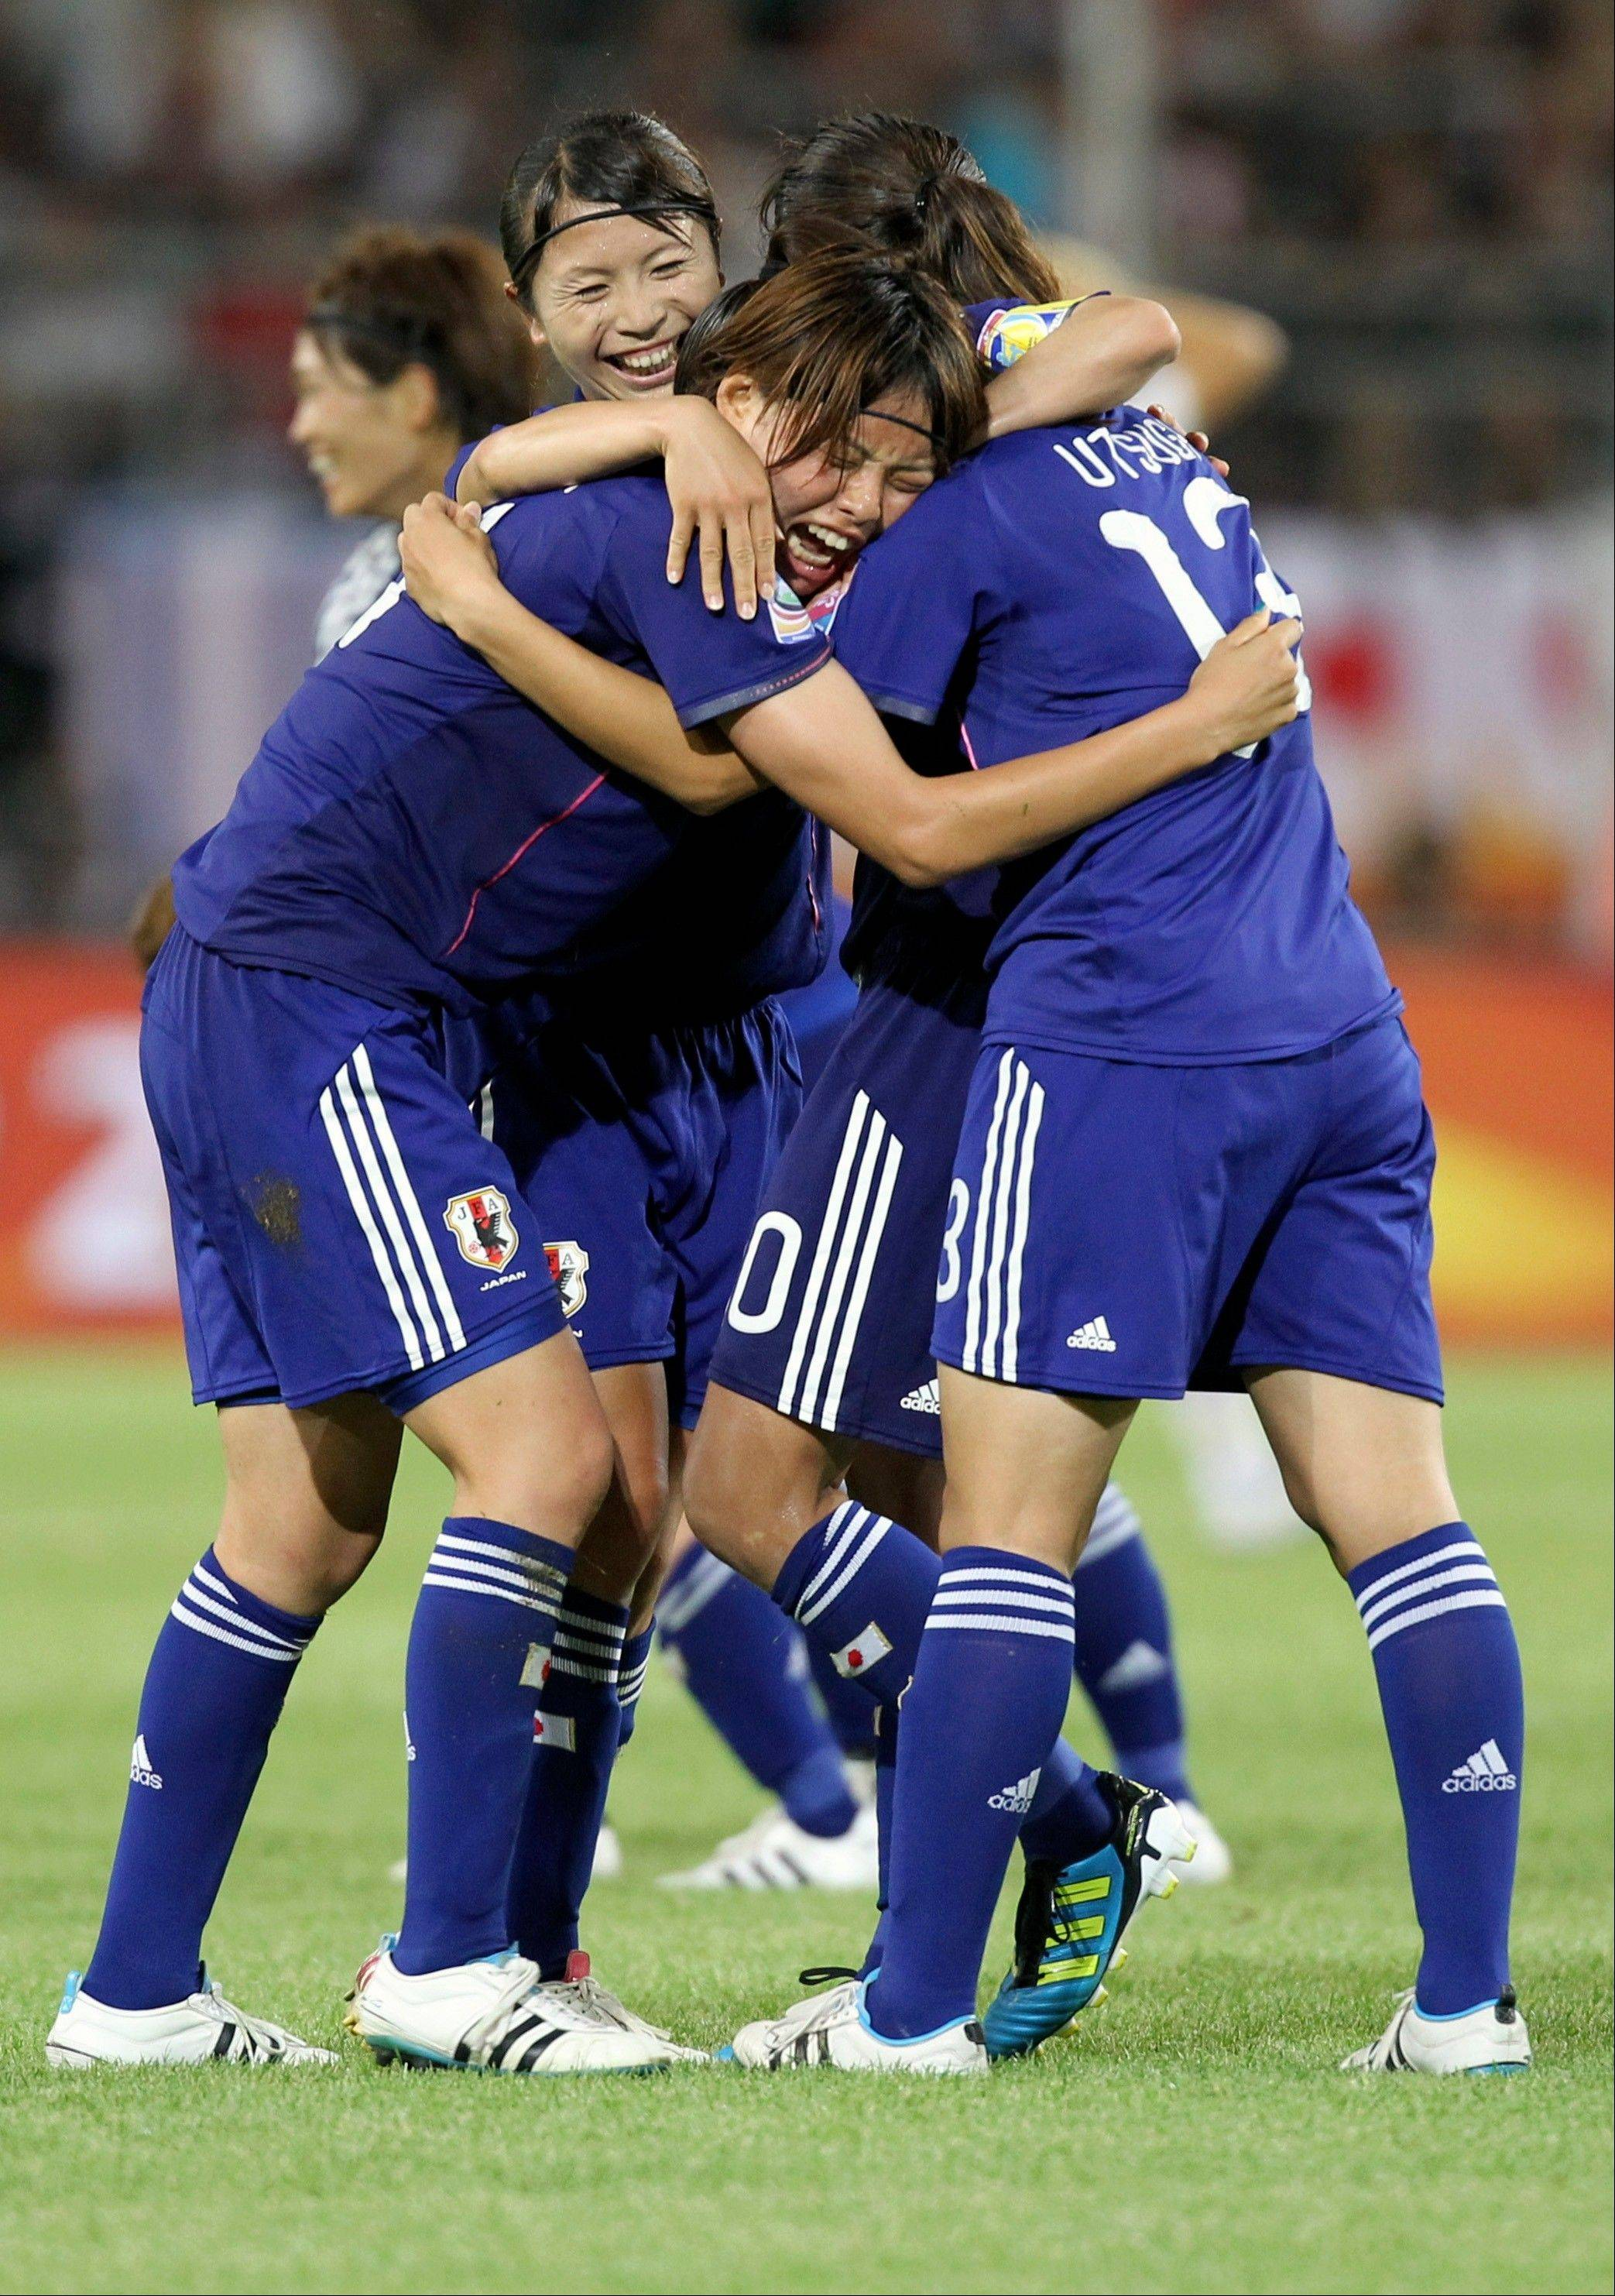 Japan�s players celebrate after winning 1-0 against tournament host Germany in a Women�s World Cup quarterfinal Saturday in Wolfsburg.